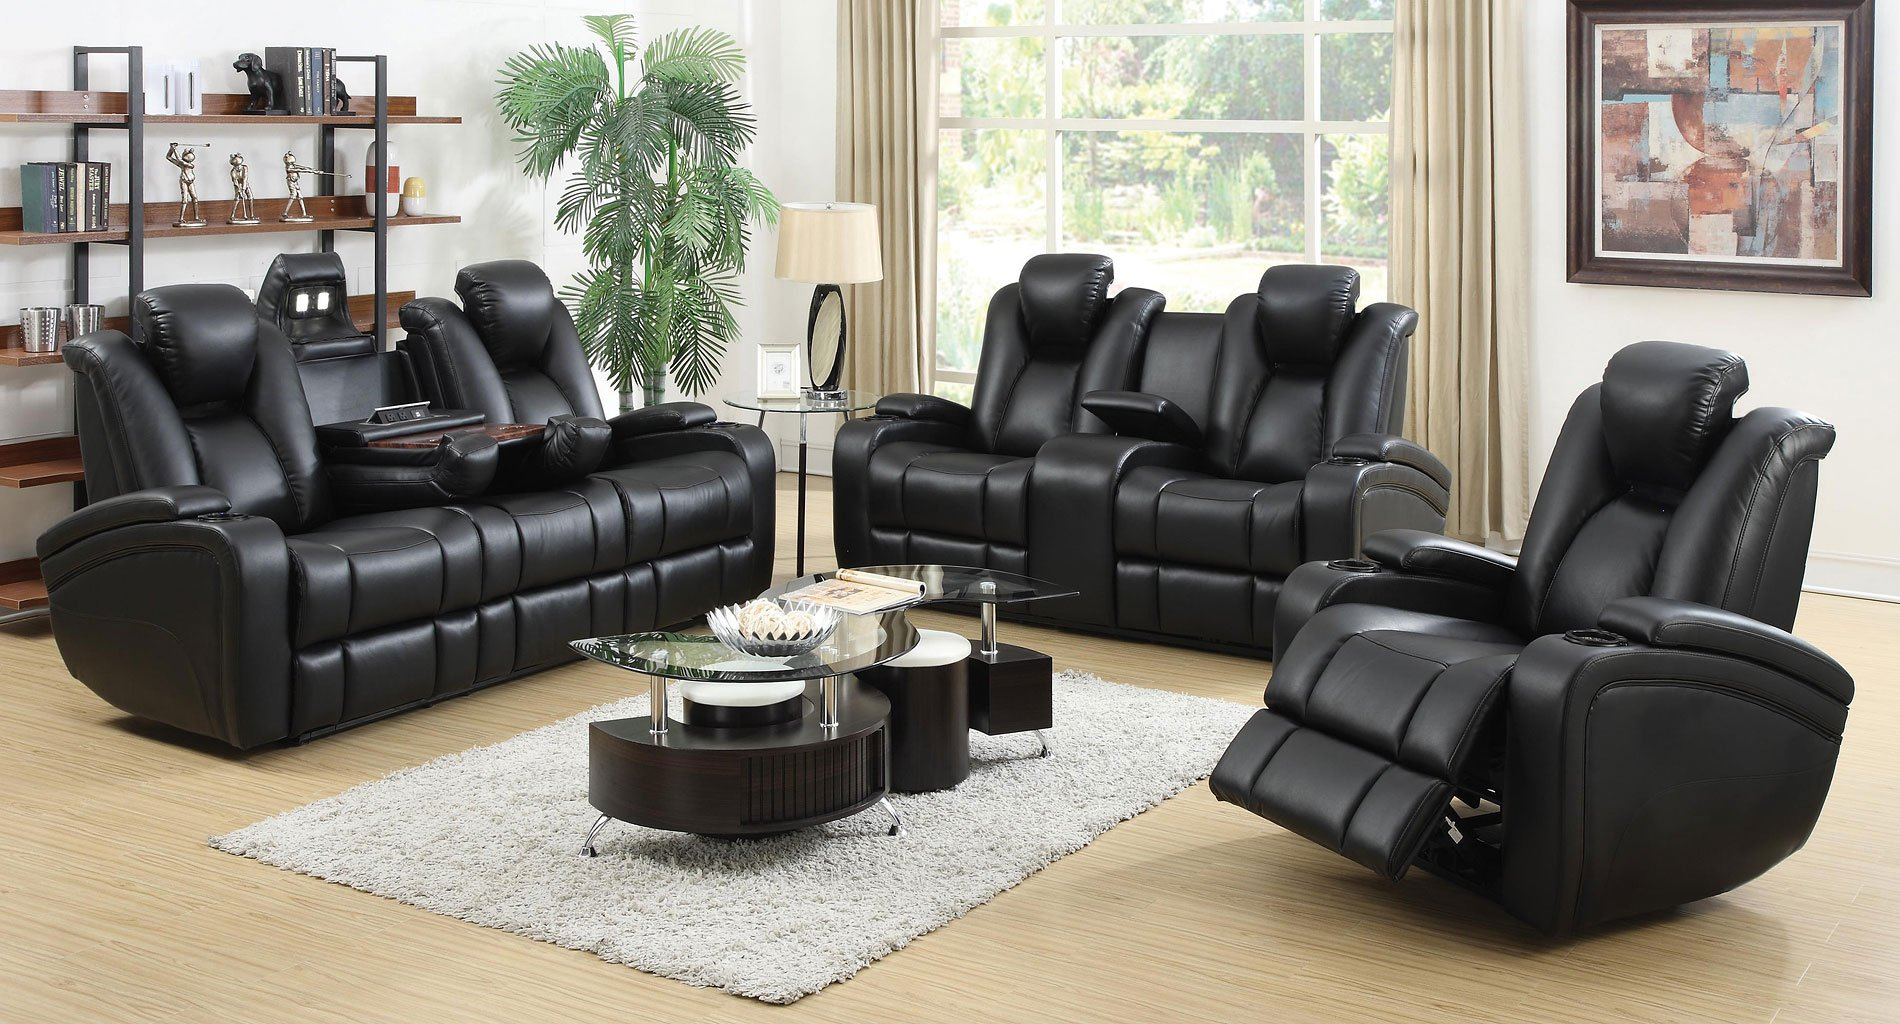 Delange Power Reclining Living Room Set By Coaster